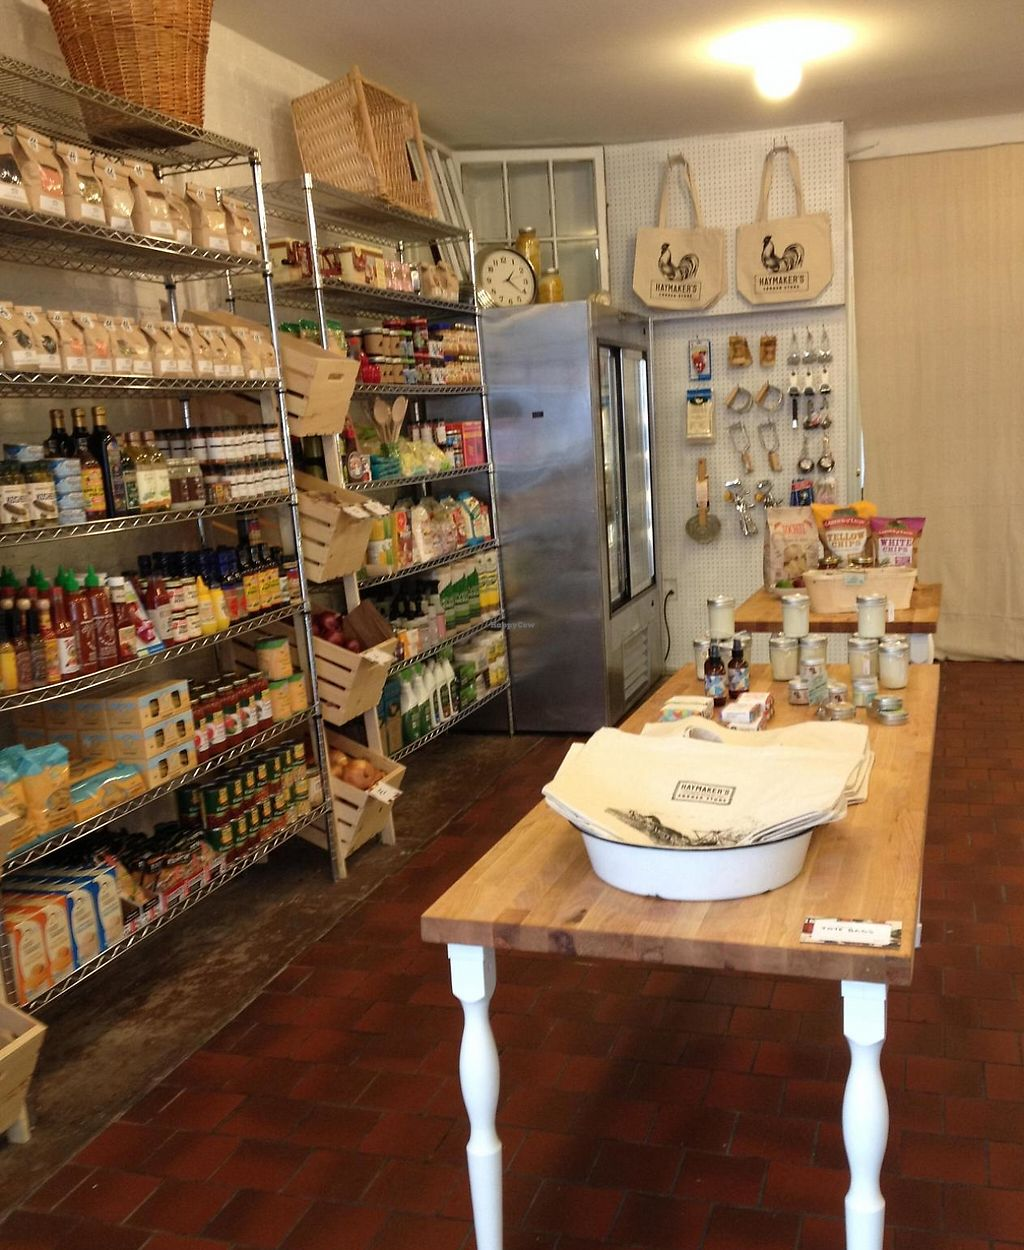 """Photo of CLOSED: Haymaker's Corner Store  by <a href=""""/members/profile/vegan_ryan"""">vegan_ryan</a> <br/>Inside of store <br/> March 16, 2015  - <a href='/contact/abuse/image/56048/212330'>Report</a>"""